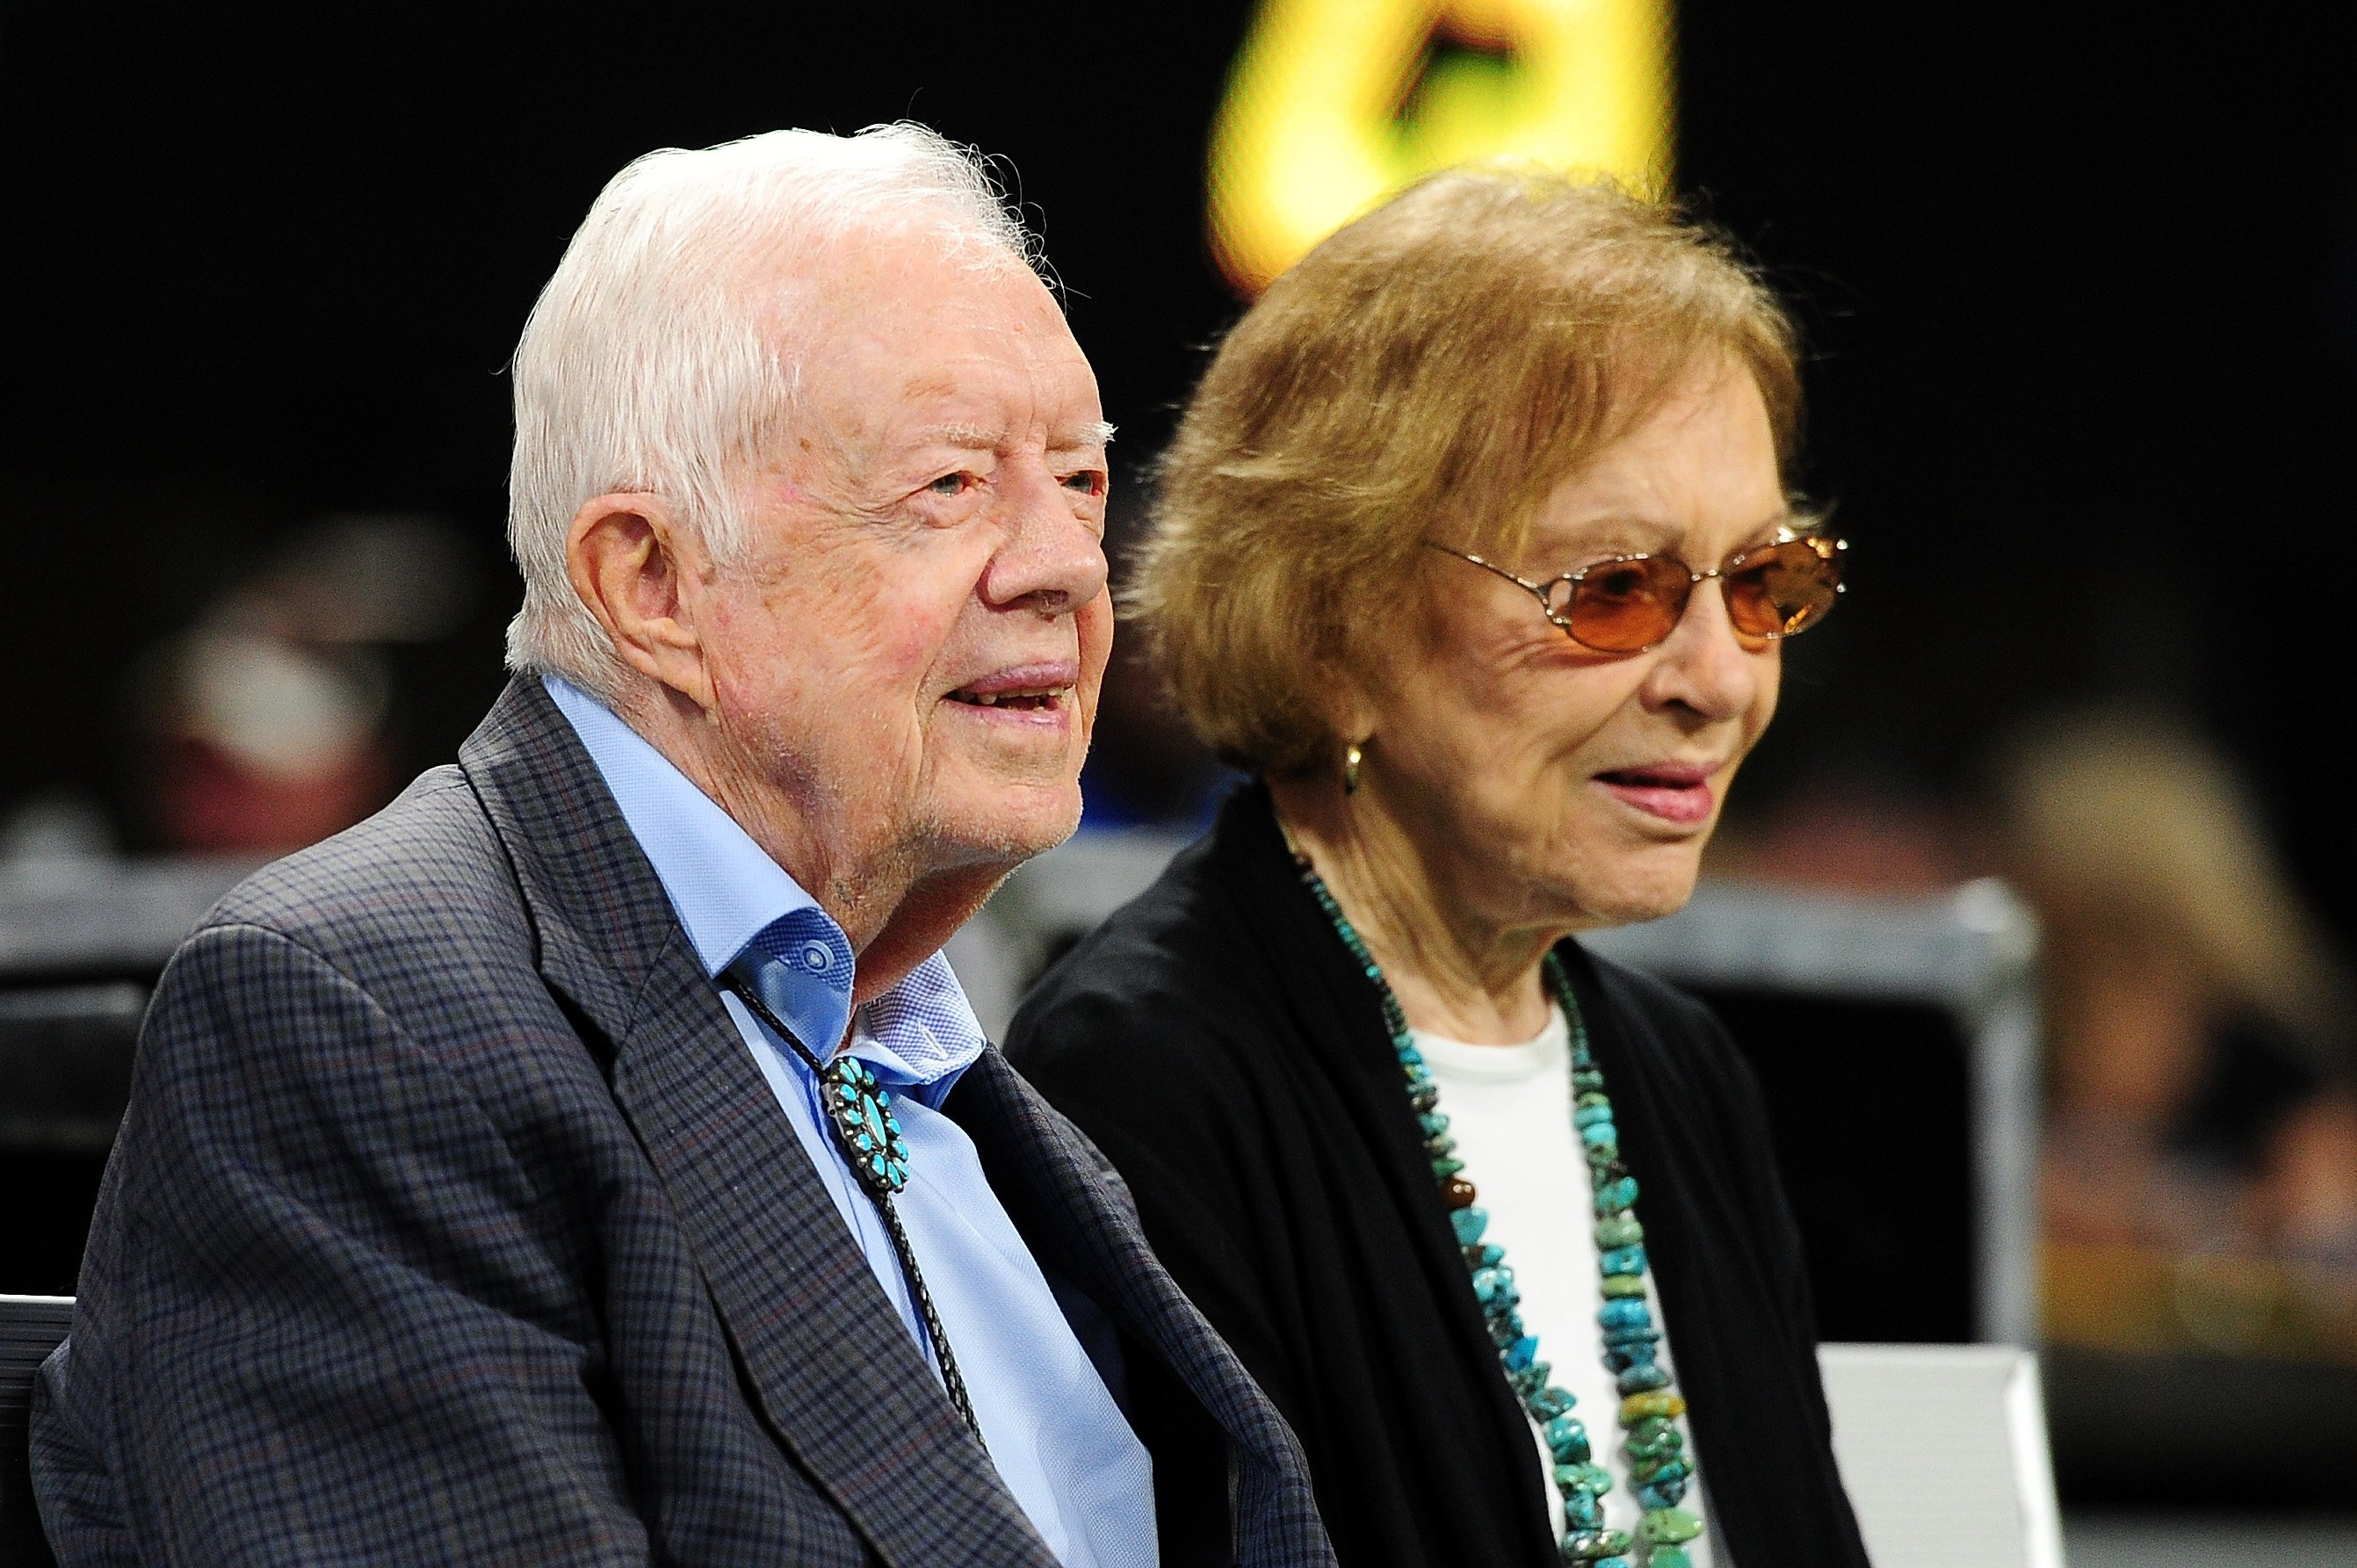 Jimmy Carter and his wife Rosalynn prior to the game between the Atlanta Falcons and the Cincinnati Bengals at Mercedes-Benz Stadium on September 30, 2018, in Atlanta, Georgia. | Source: Getty Images.